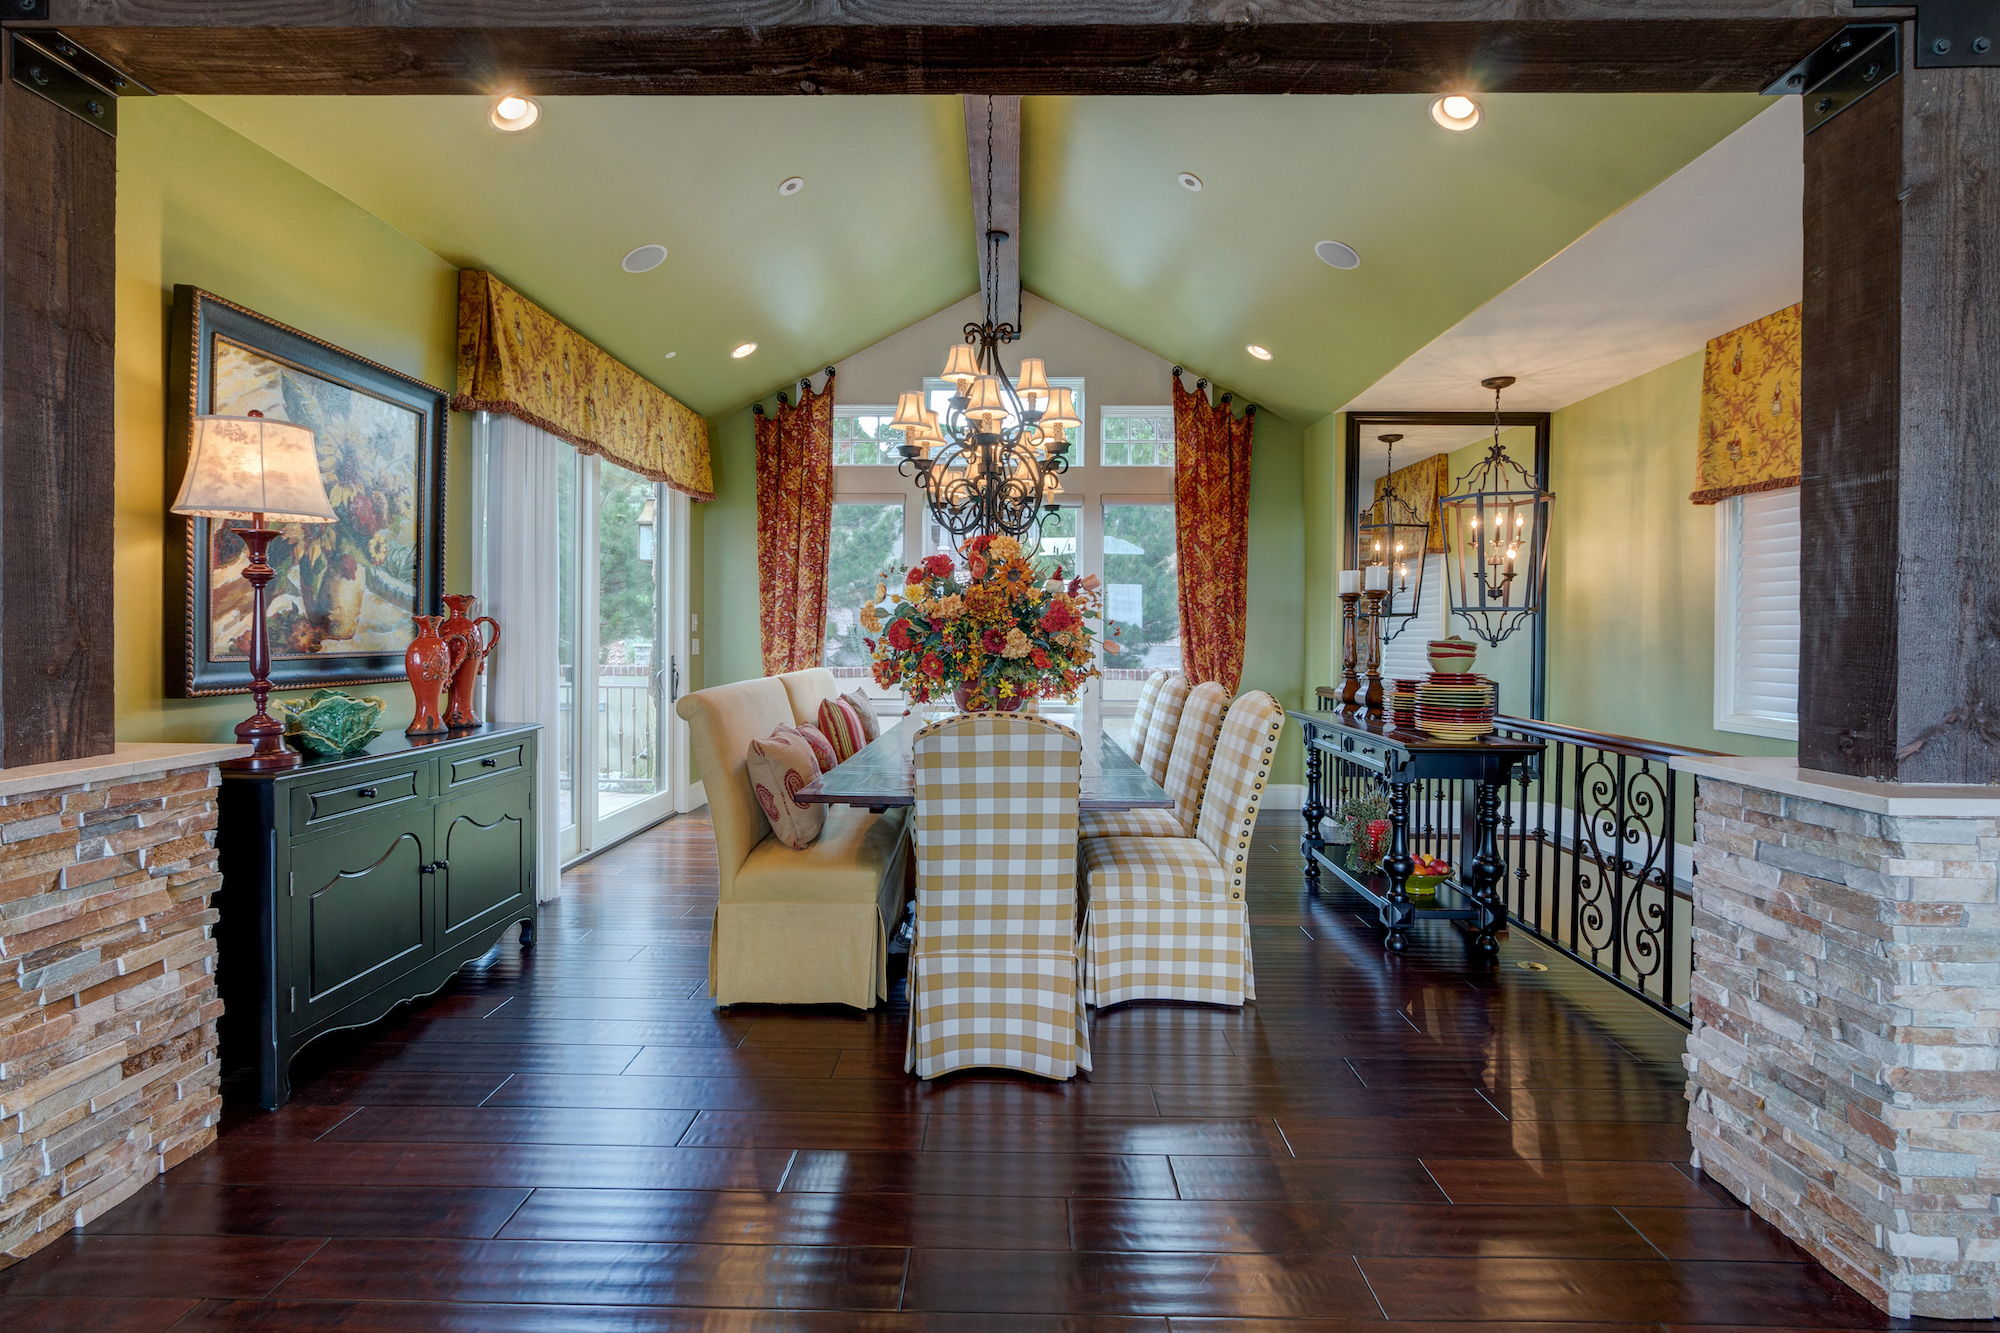 007-Dining room with vaulted ceiling opens to front patio.jpg